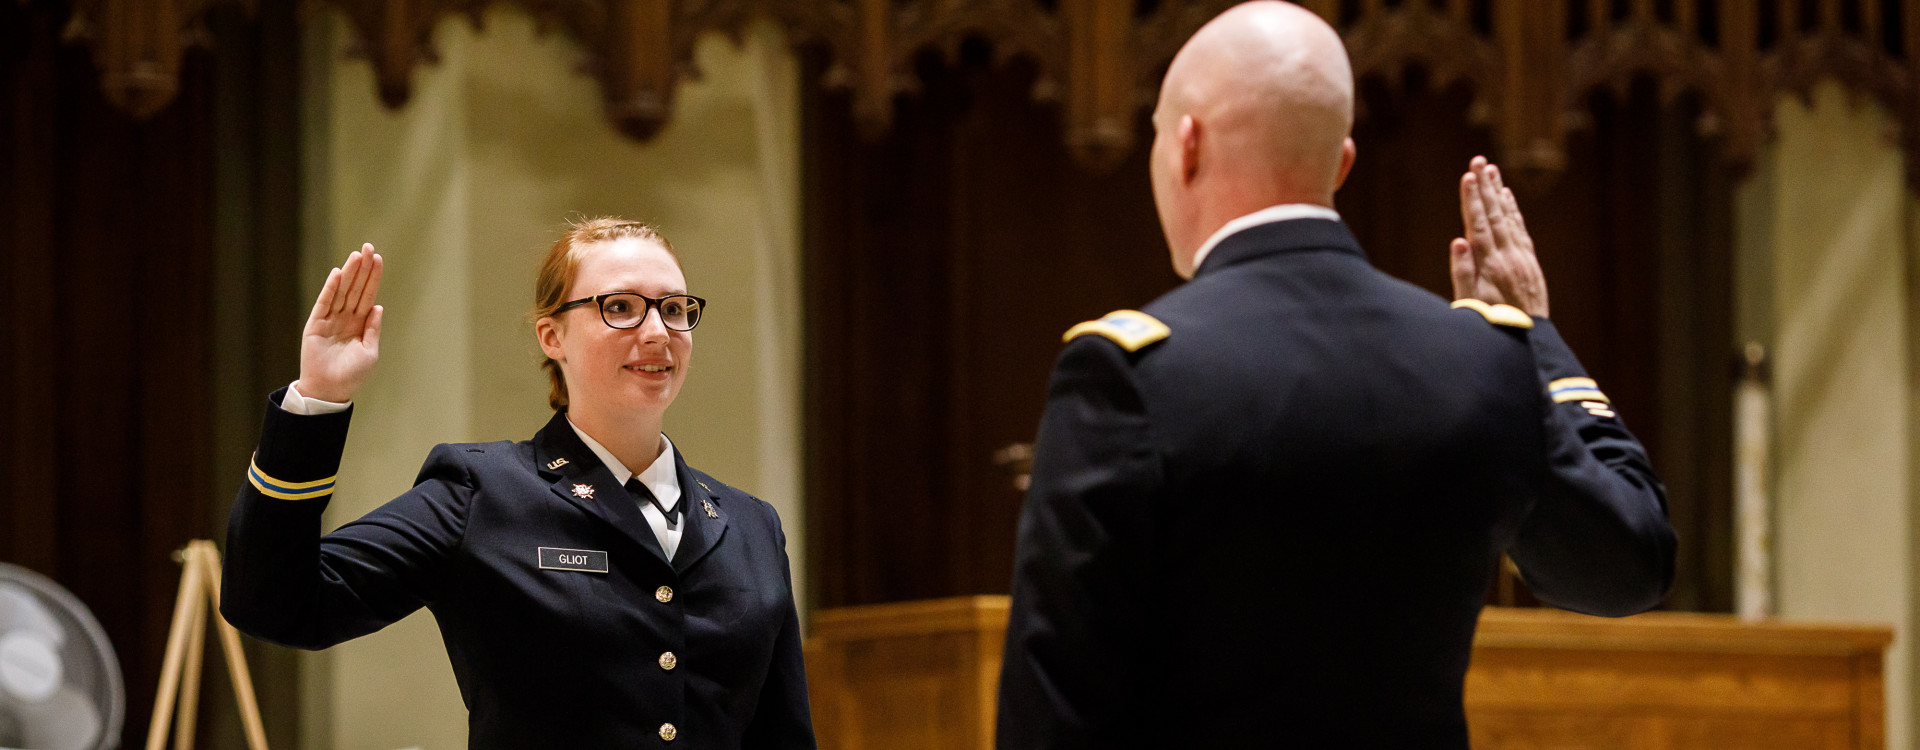 Cadet being sworn in as 2nd Lieutenant